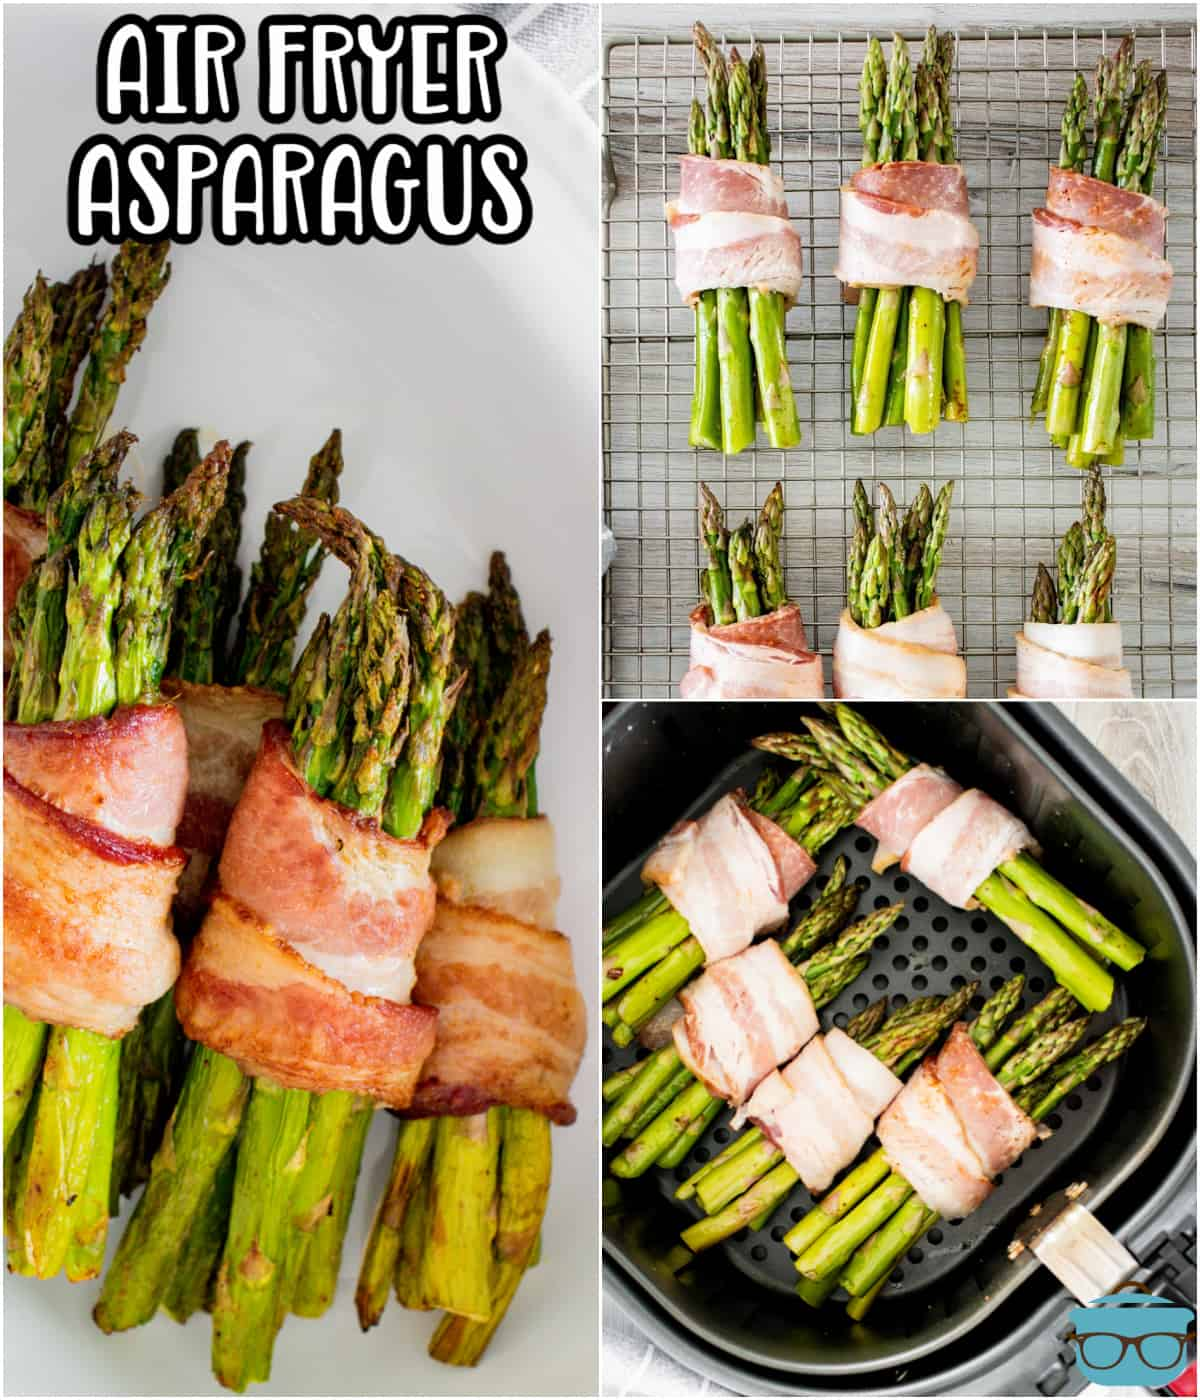 If you love quick and delicious appetizers or side dishes, then I highly recommend you make this Air Fryer Bacon Wrapped Asparagus! With minimal ingredients and time, it's the tastiest asparagus recipe!